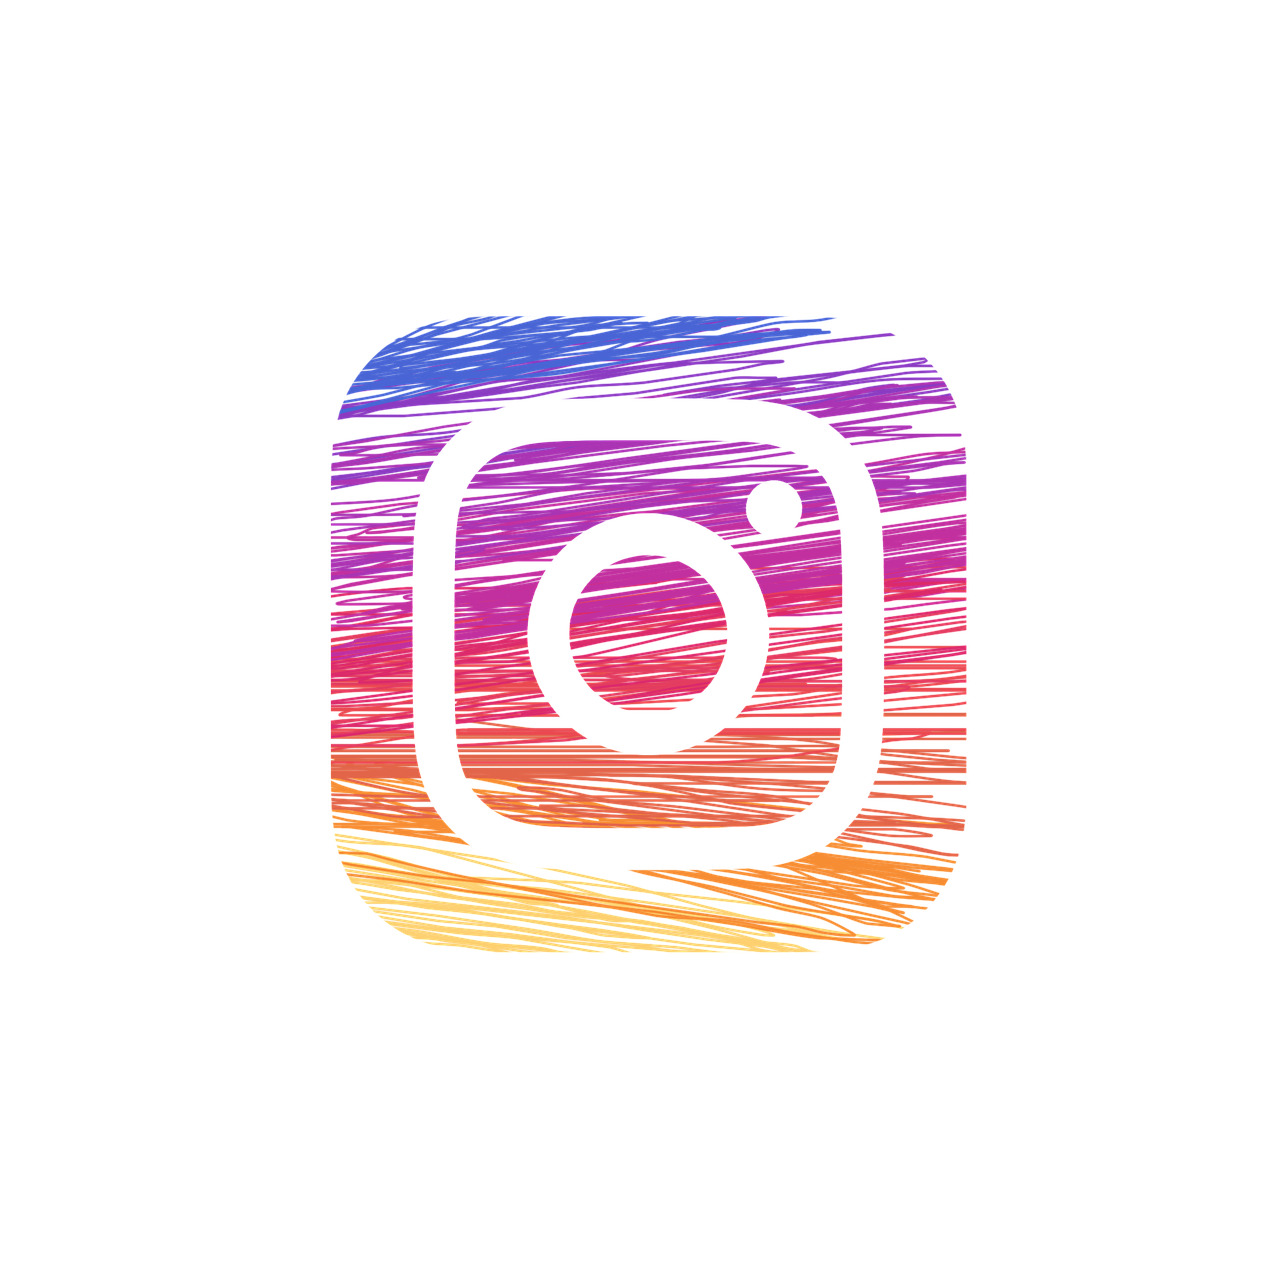 give you 5 shoutout on my 5k instagram page.